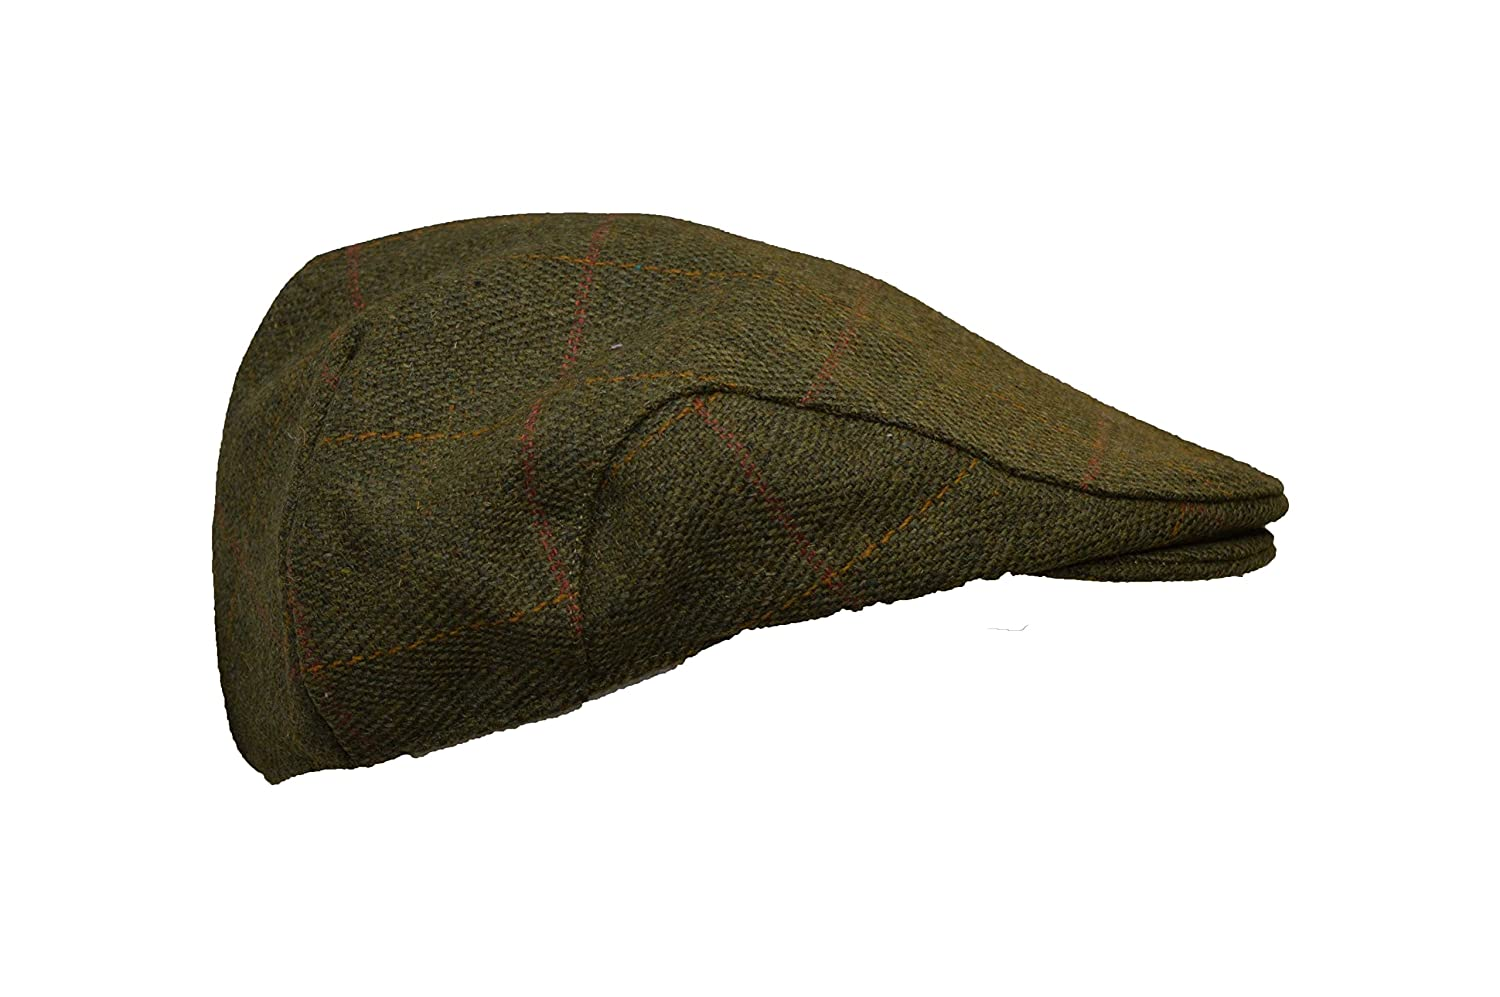 71538ffc305 Walker   Hawkes - Uni-Sex Derby Tweed Flat Cap Hunting Shooting Countrywear  Hat - Dark Sage  Amazon.co.uk  Clothing